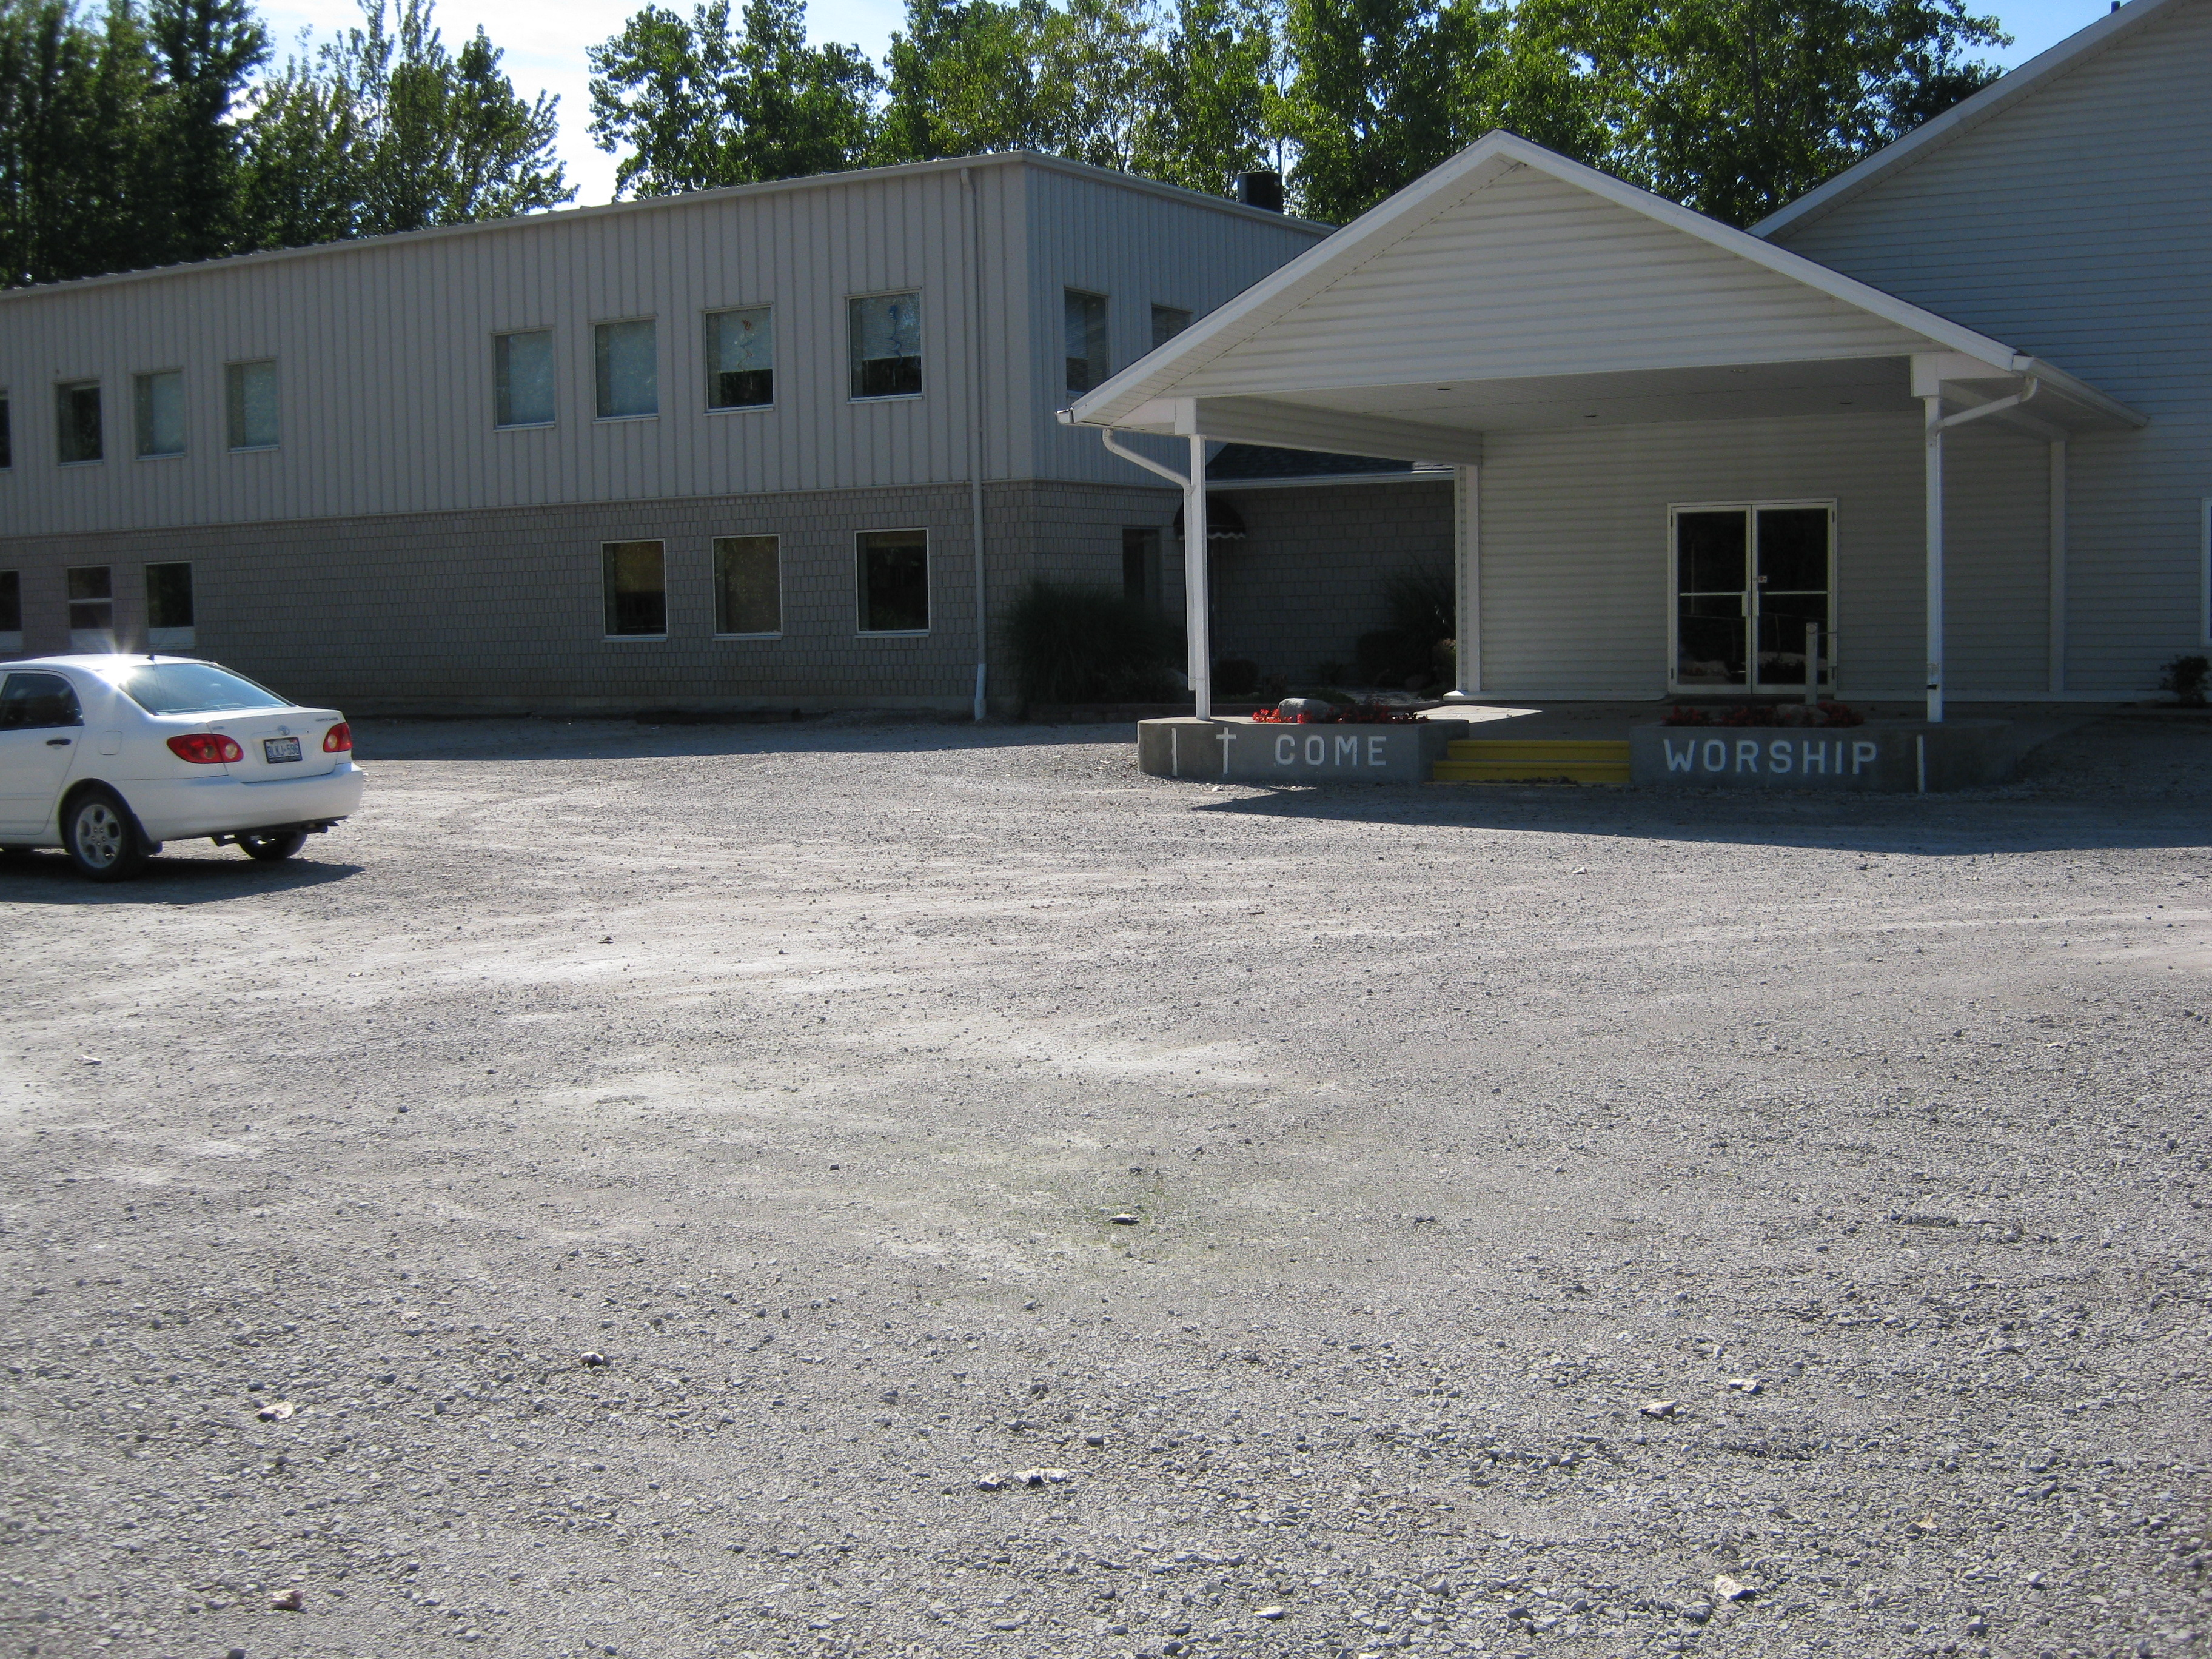 Car port at the entrance of the gray and white new building